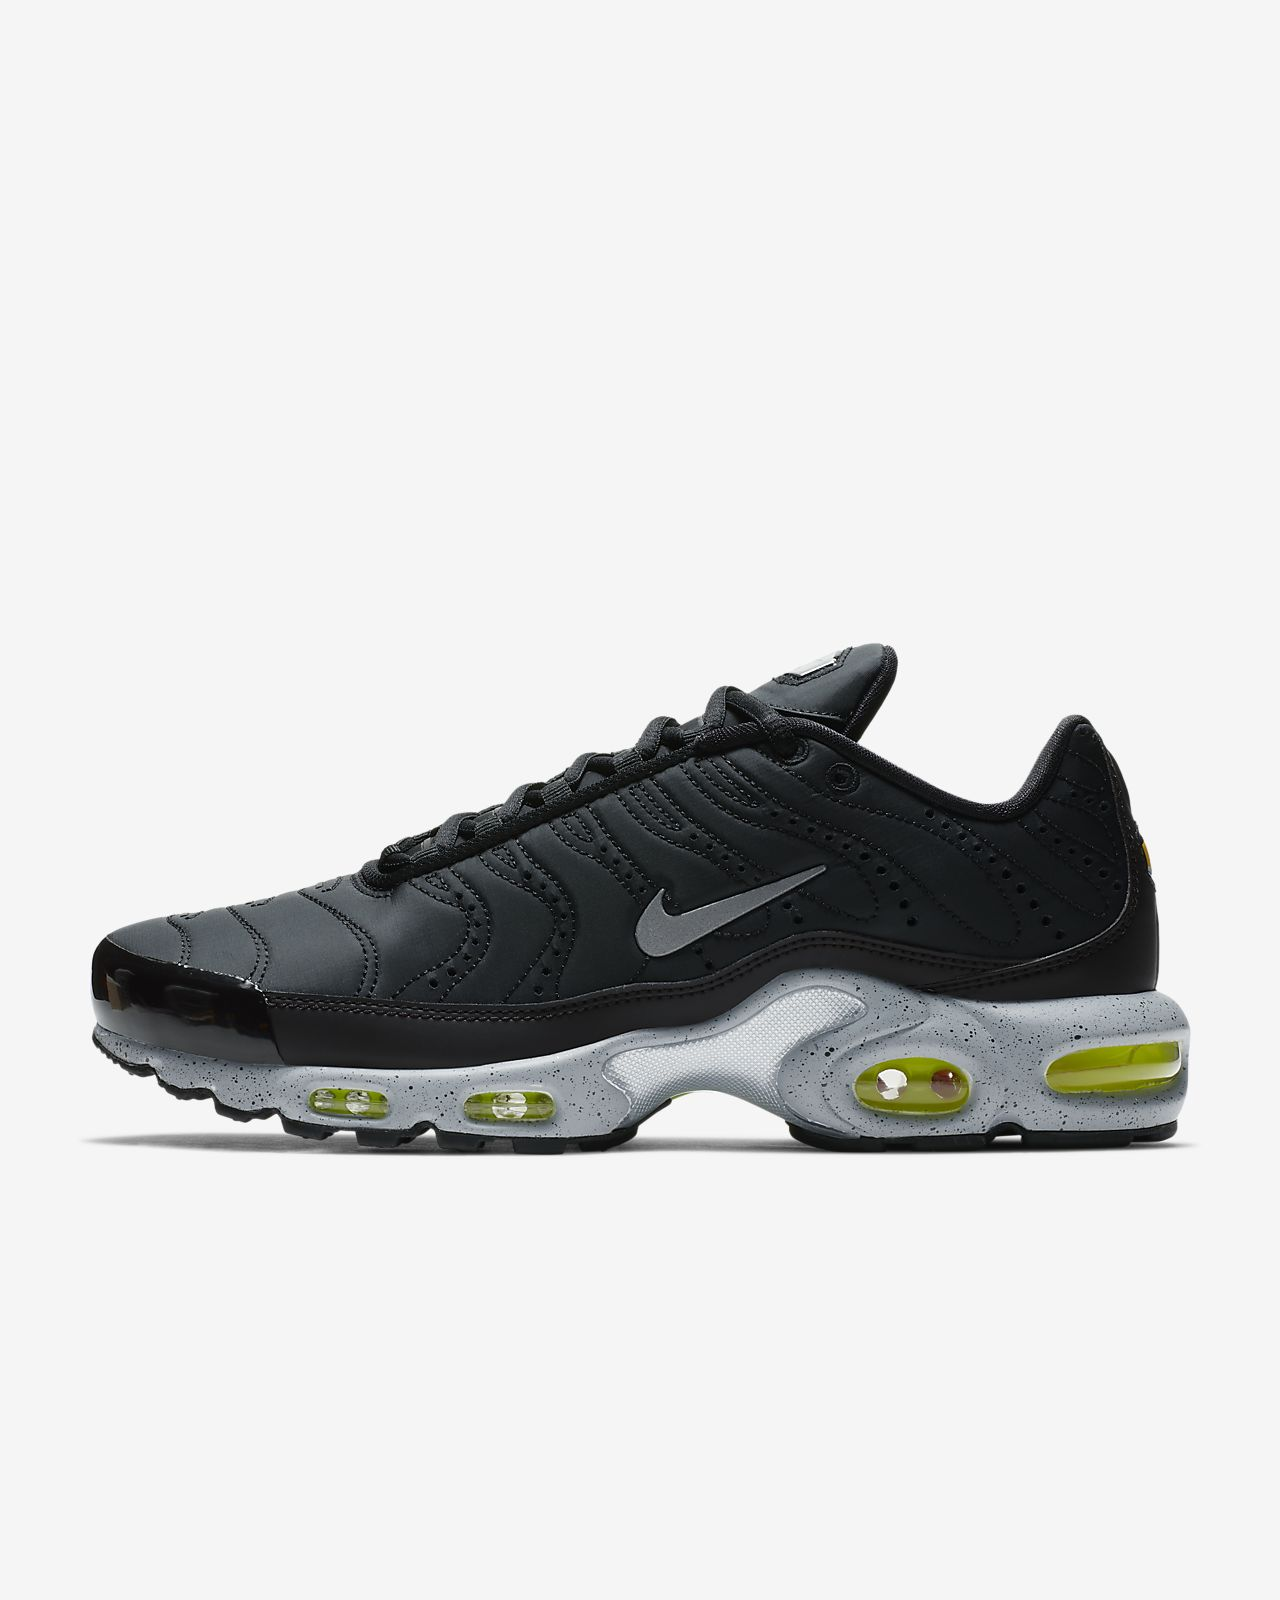 separation shoes 1dd0a 2cb2b ... Nike Air Max Plus Premium-sko til mænd